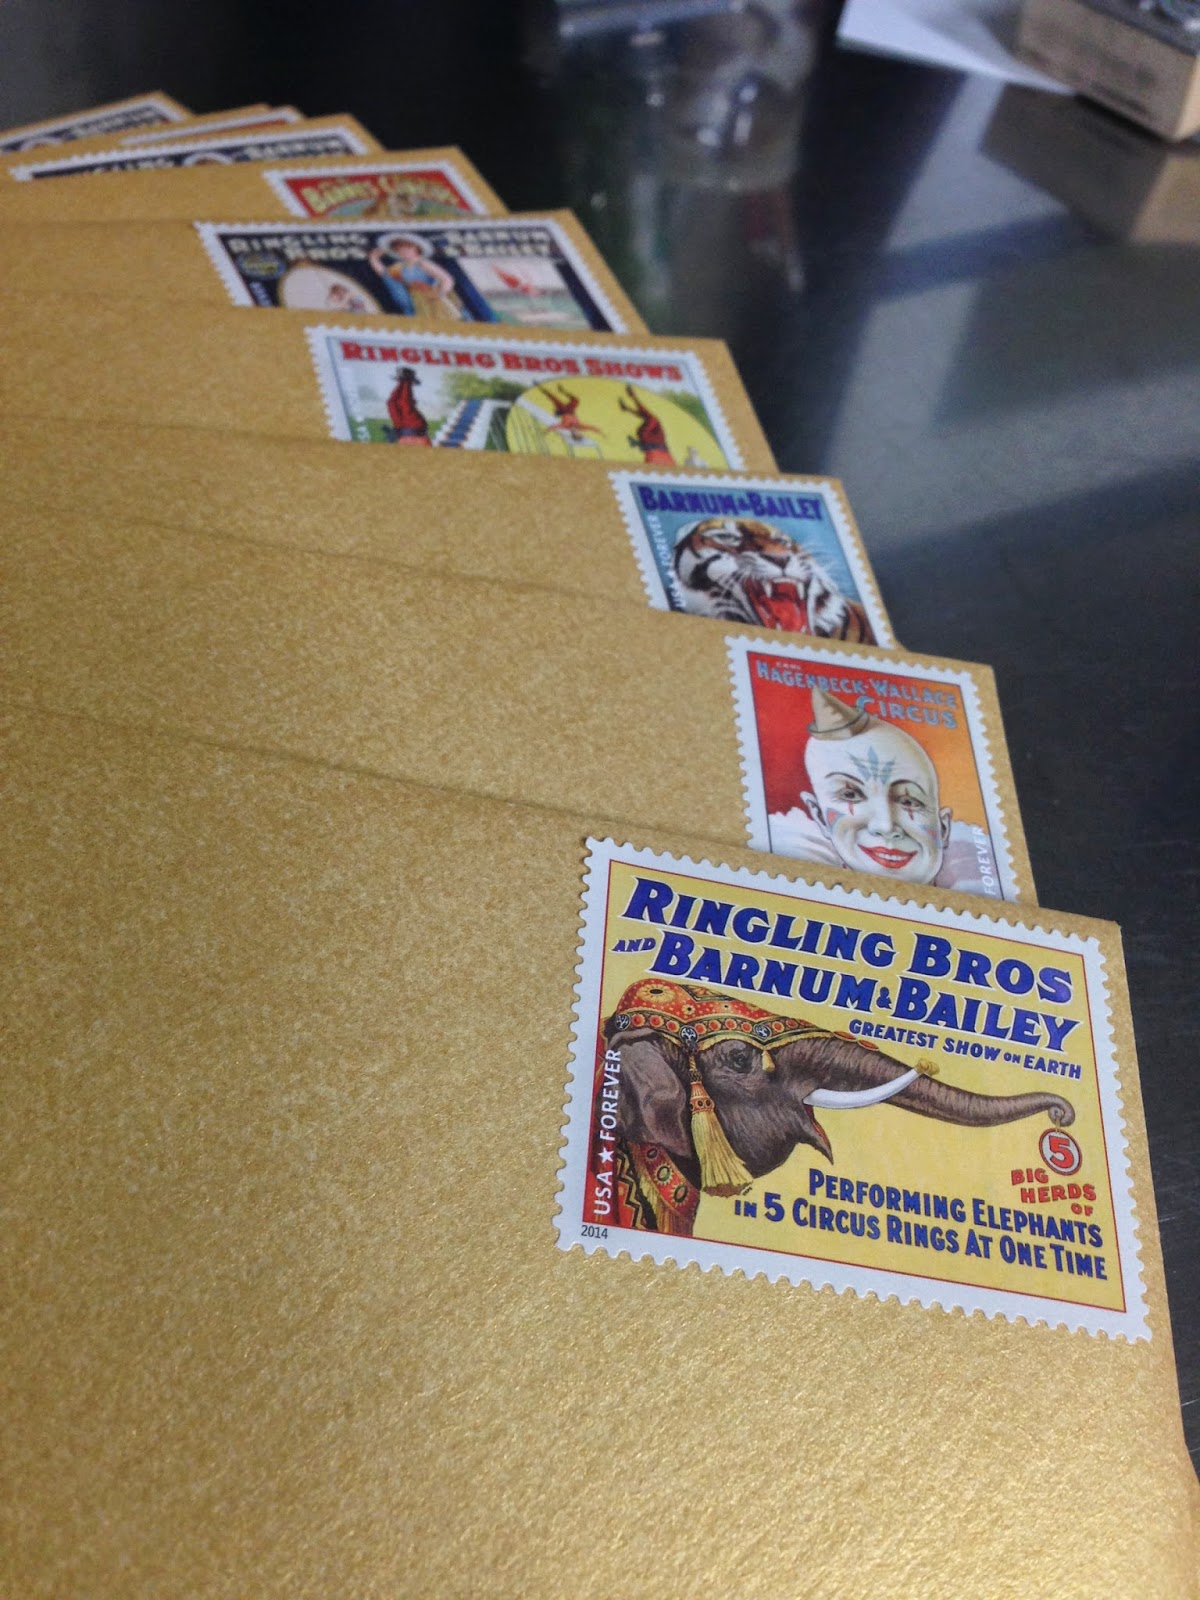 The use of vintage circus stamps was amazing!